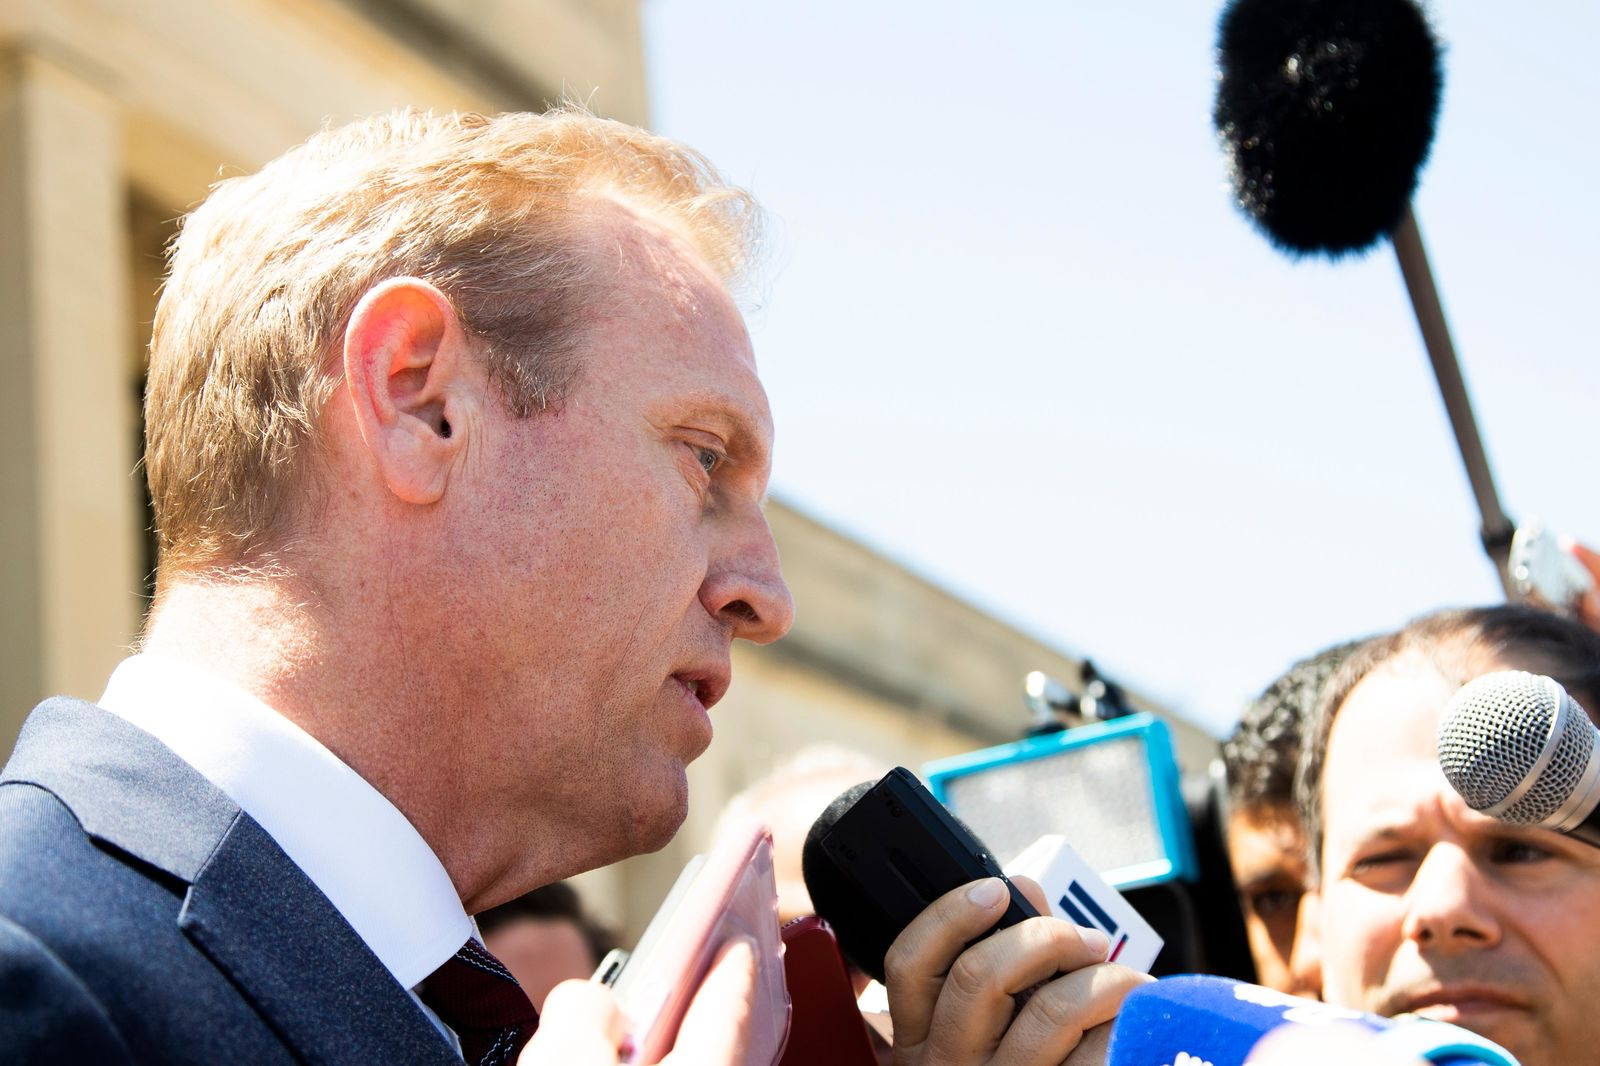 Acting Secretary of Defense Patrick Shanahan speaks about the situation in the Persian Gulf region during as he waits for the arrival of Portuguese Minister of National Defense Joao Cravinho, at the Pentagon, Friday, June 14, 2019. (AP Photo/Manuel Balce Ceneta)